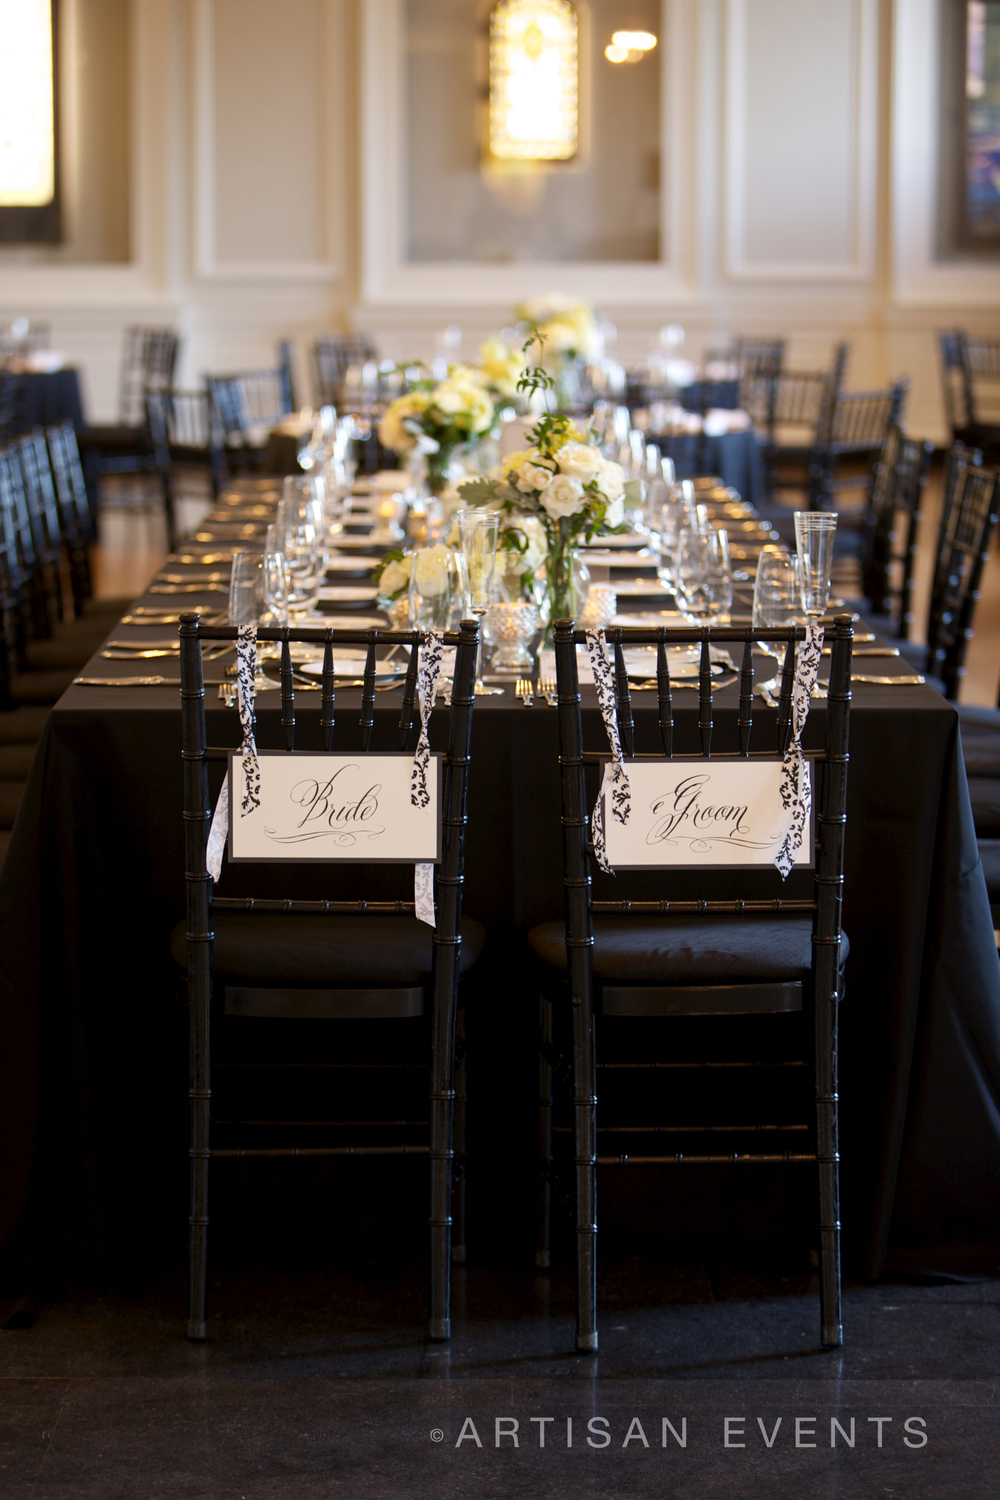 0812_ArtisanEvents_Chicago_Wedding_Kahler.jpg